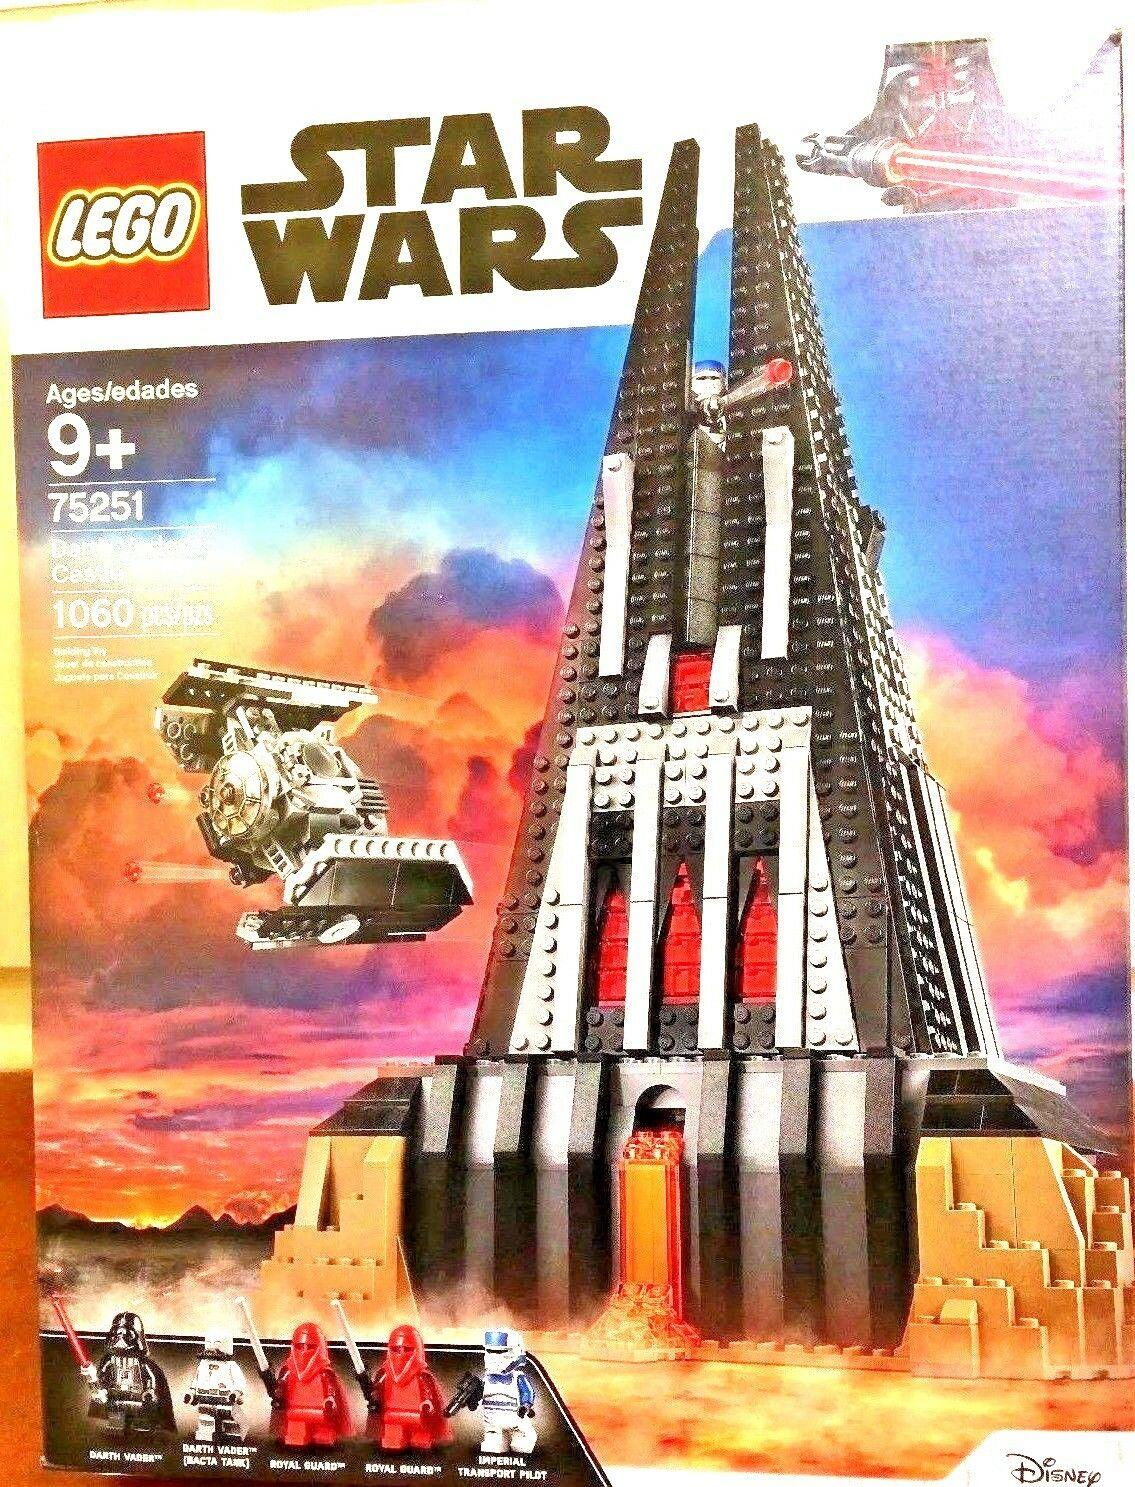 LEGO Star Wars Darth Vader's Castle 75251 Rogue One 1060 NEW OFFICIAL SEALED